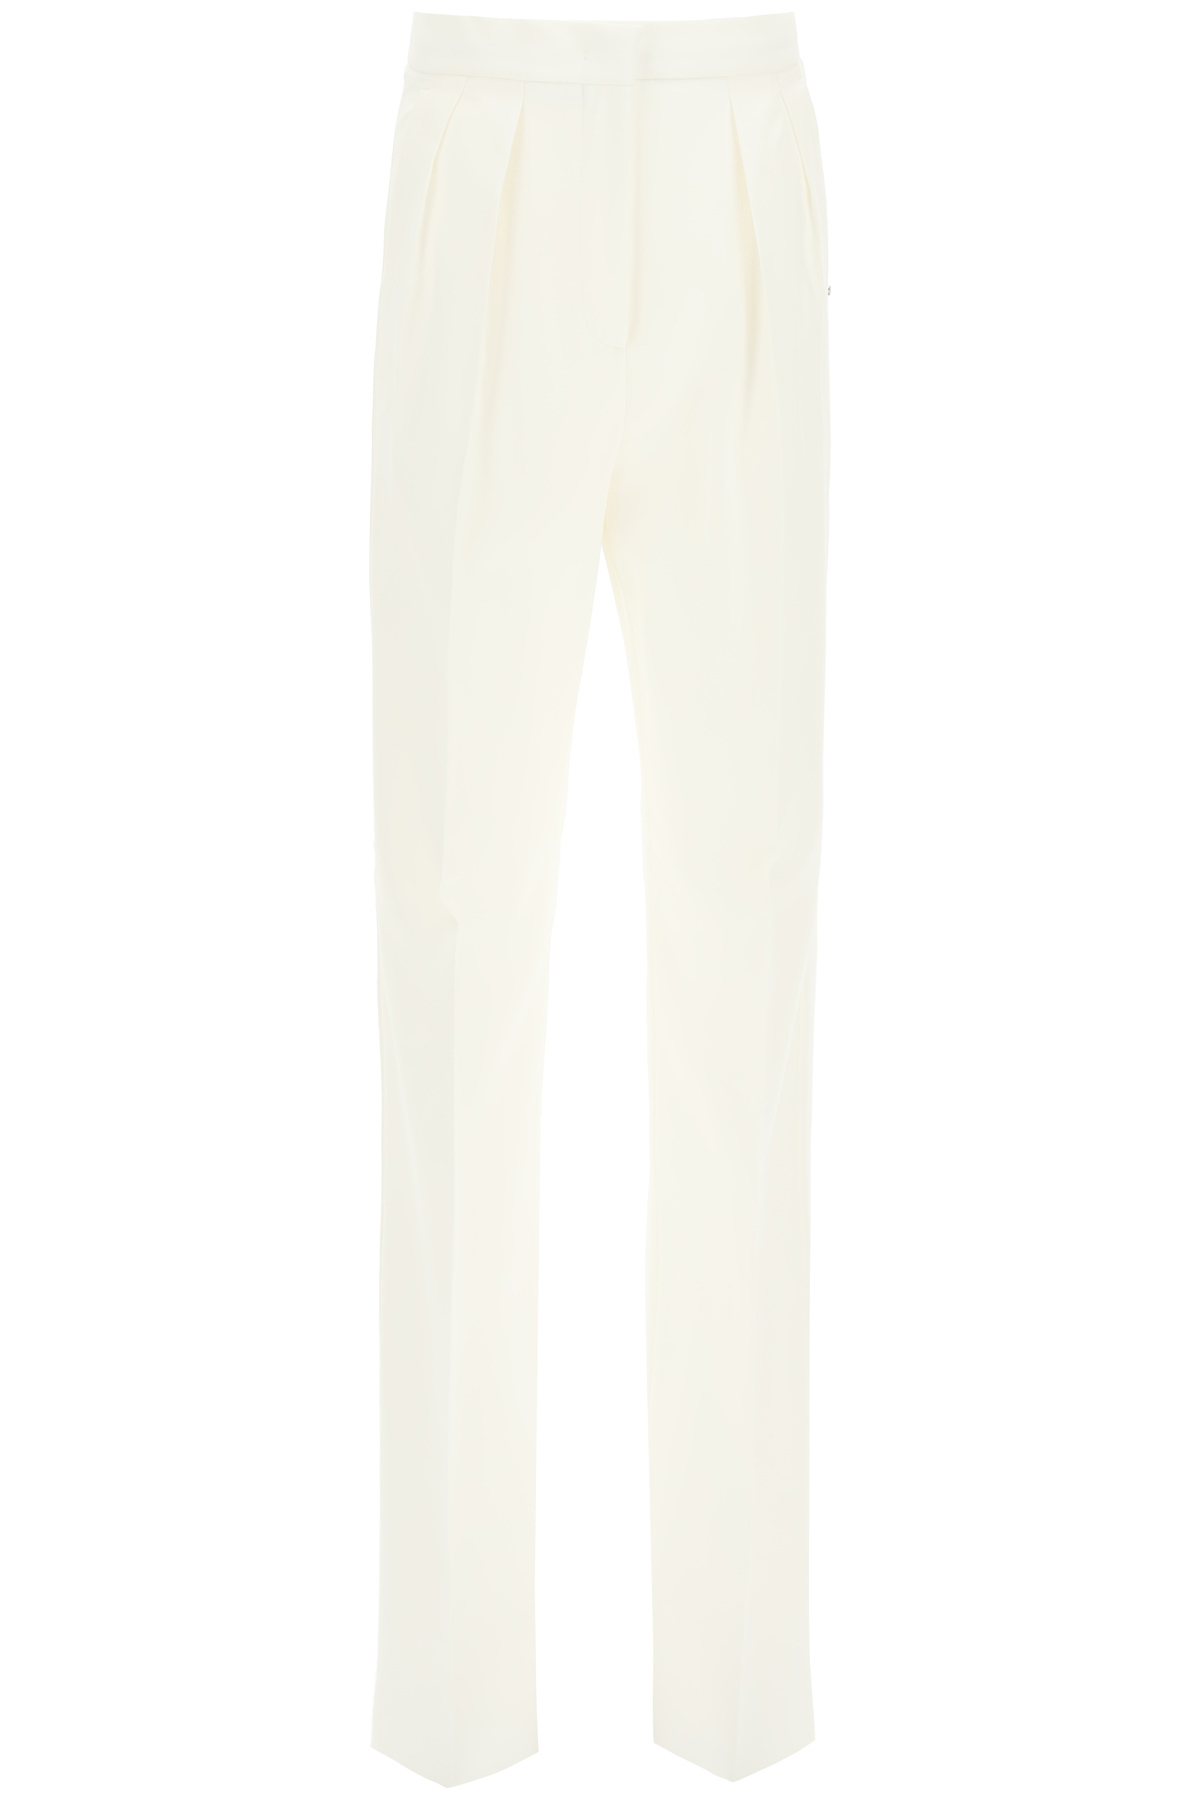 SPORTMAX TAILORED TROUSERS WITH PLEATS 38 White Cotton